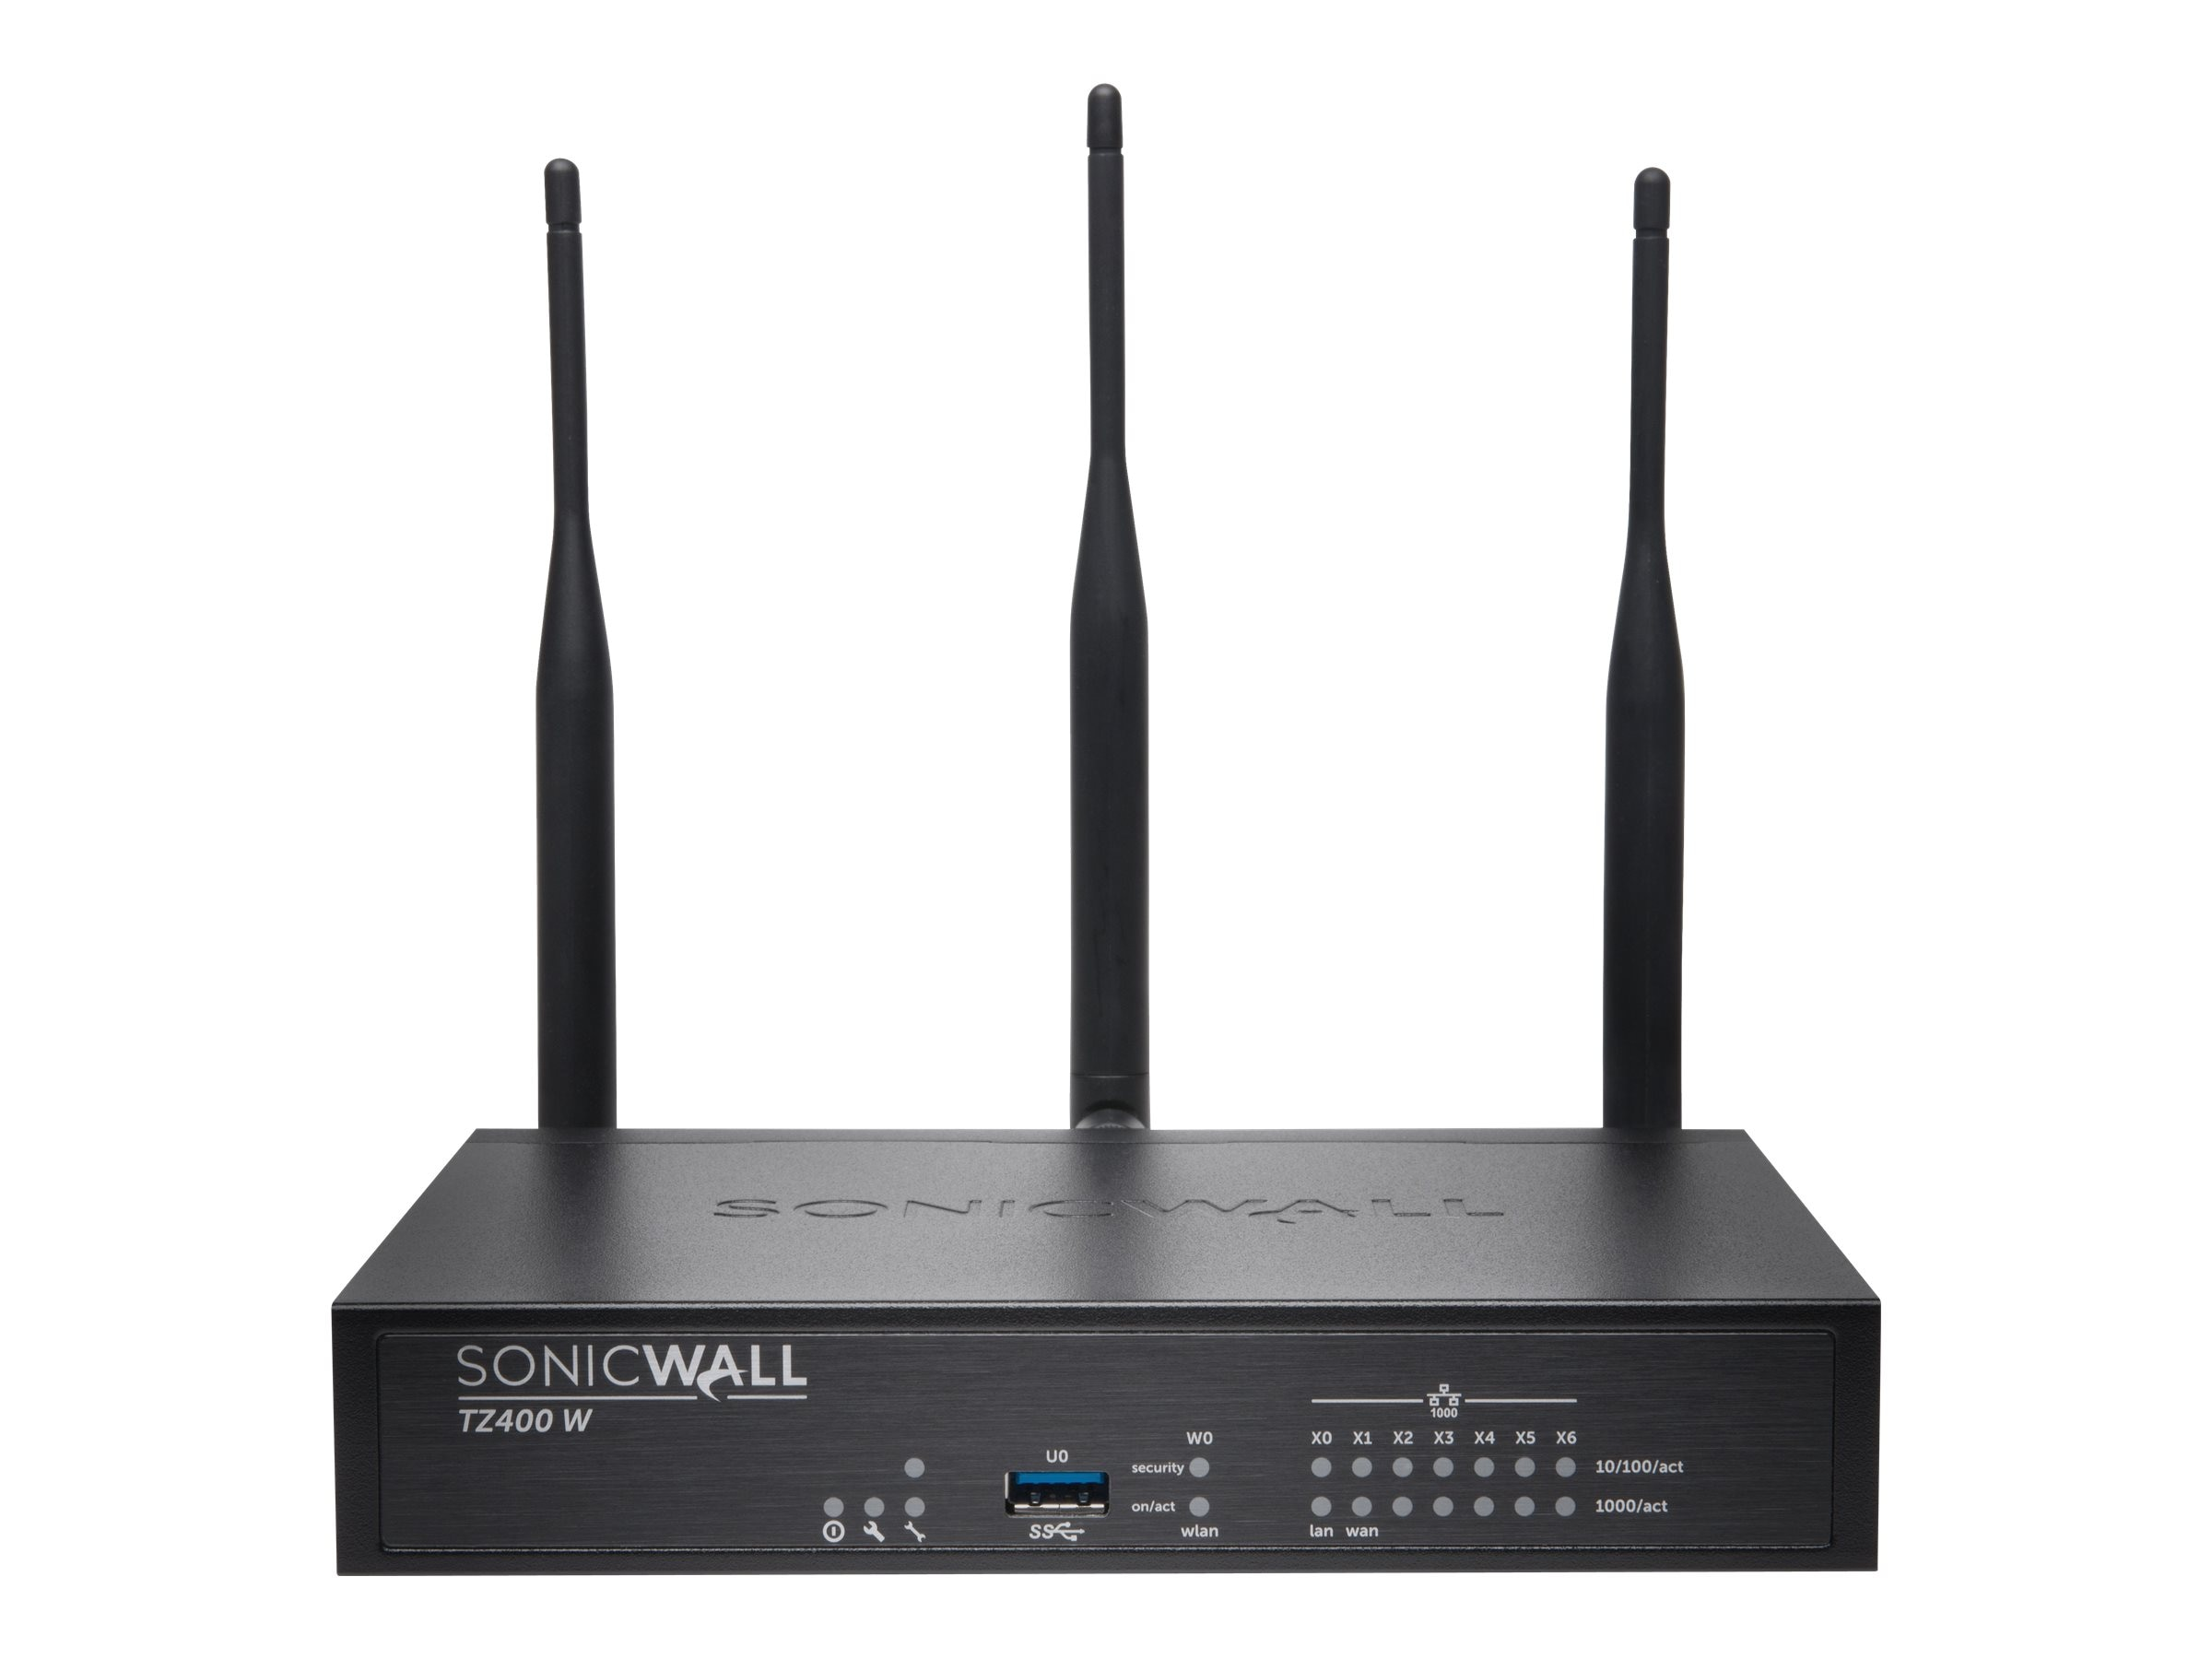 SonicWALL 01-SSC-0516 Image 2